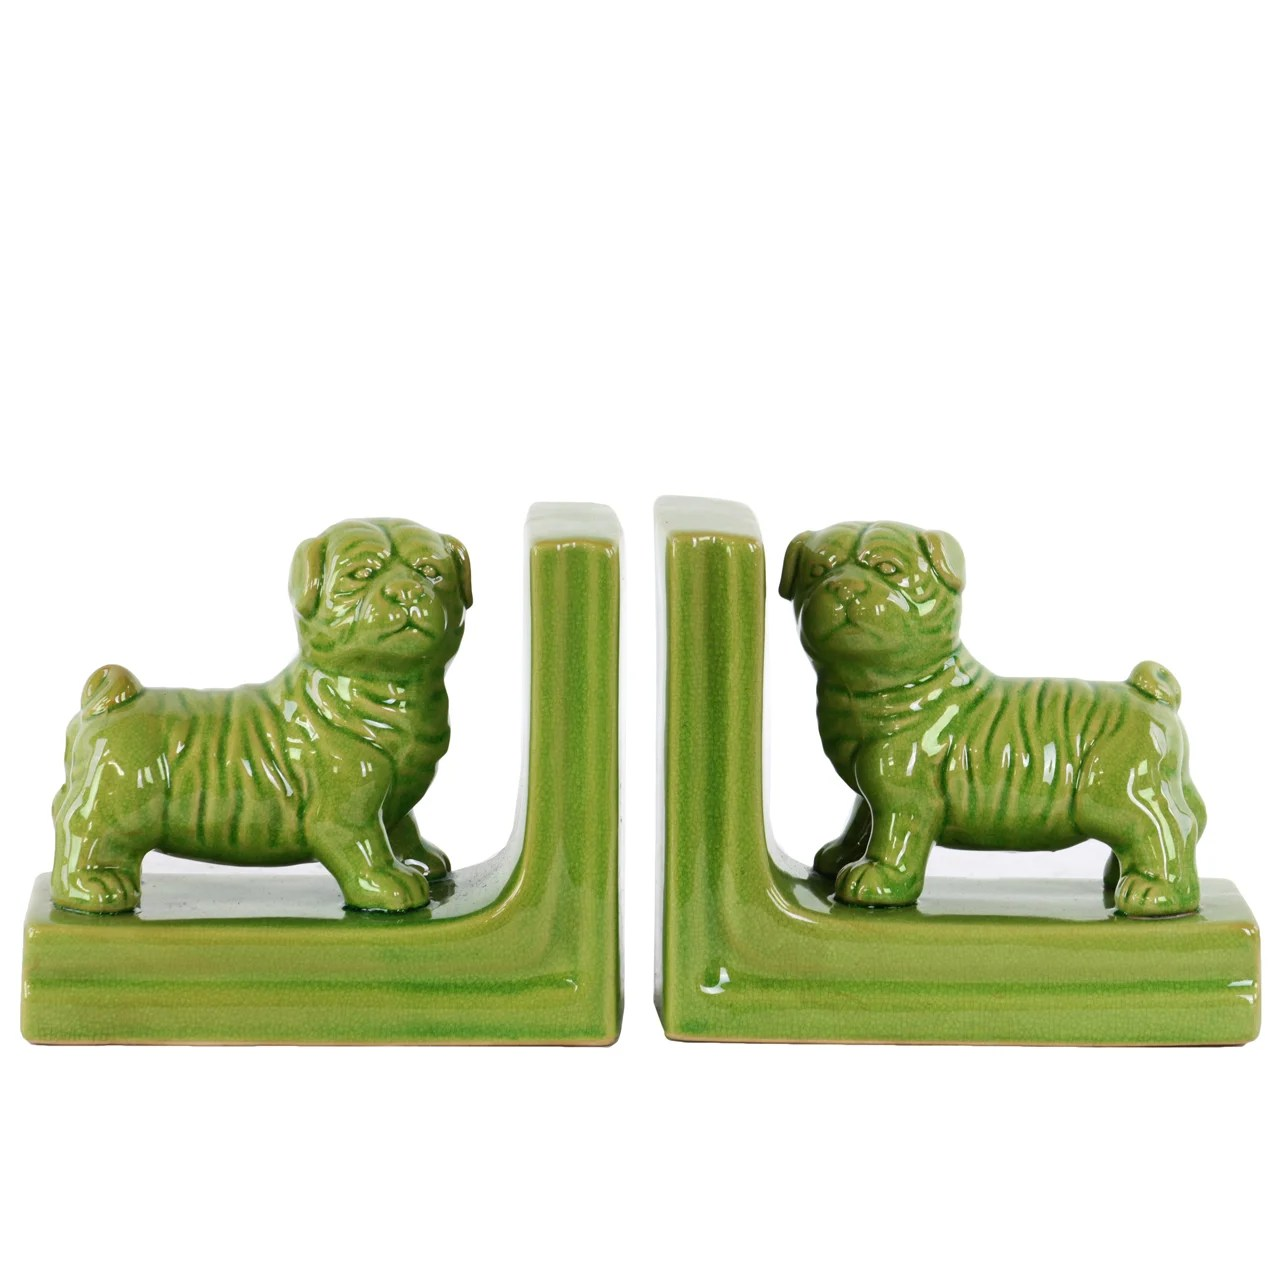 Kitchen Bookends Urban Trends Ceramic British Bulldog Bookend Wayfair